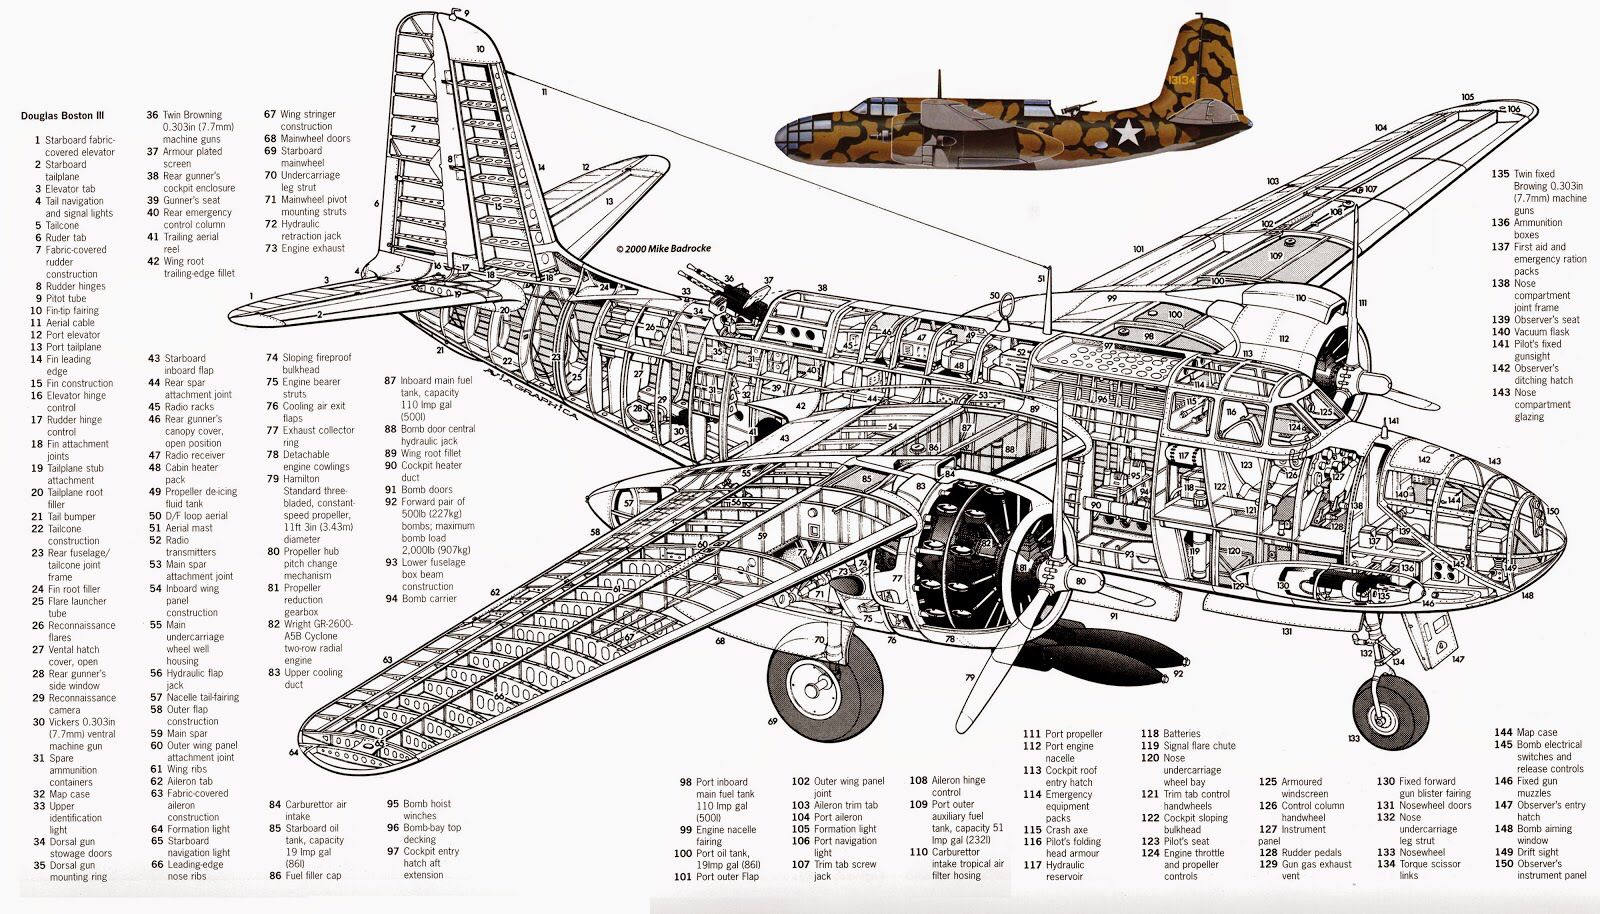 Pin By Piotr Matylla On Aircarft Cutaways Aircraft Images Wwii Airplane Aircraft Design